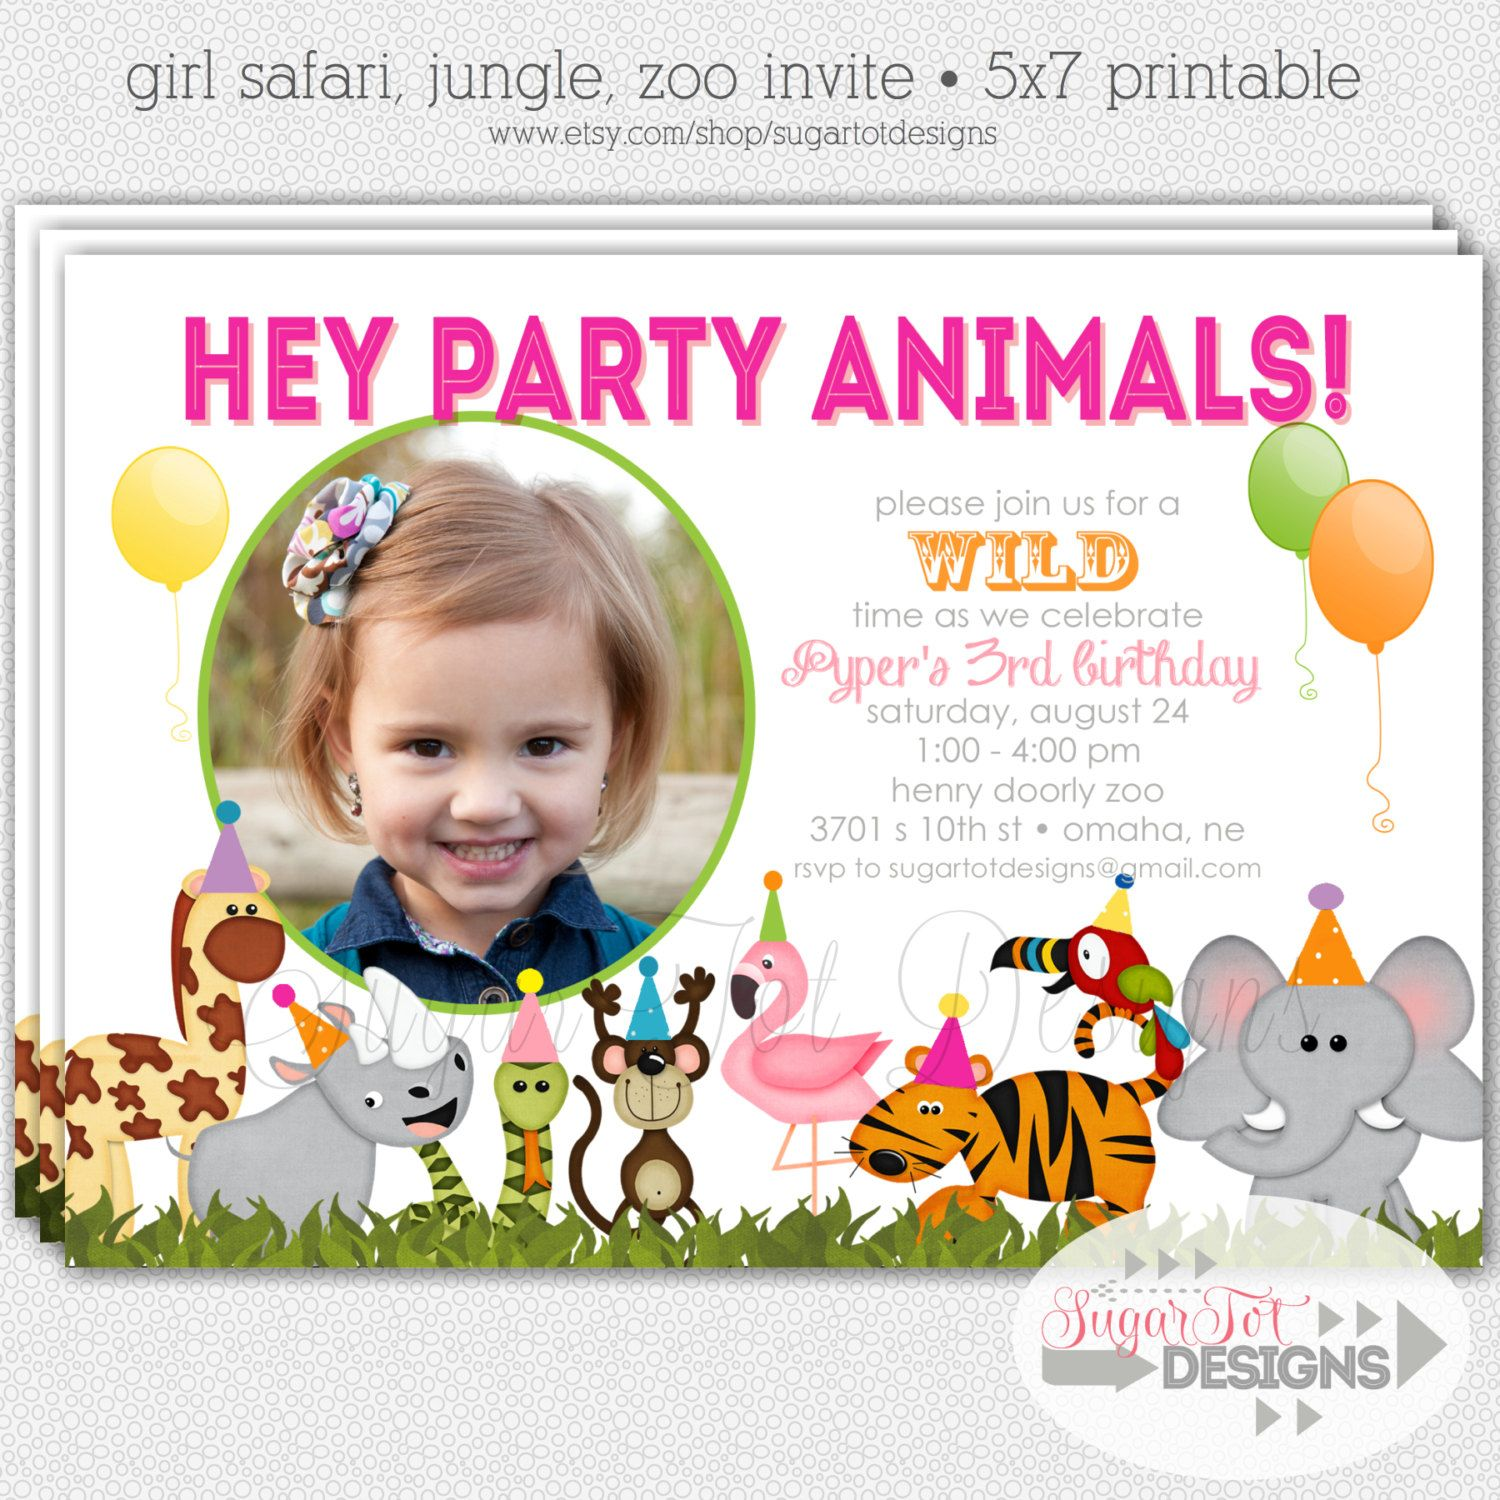 African Themed Party Invitations Image Collections Party - Free printable birthday invitations jungle theme